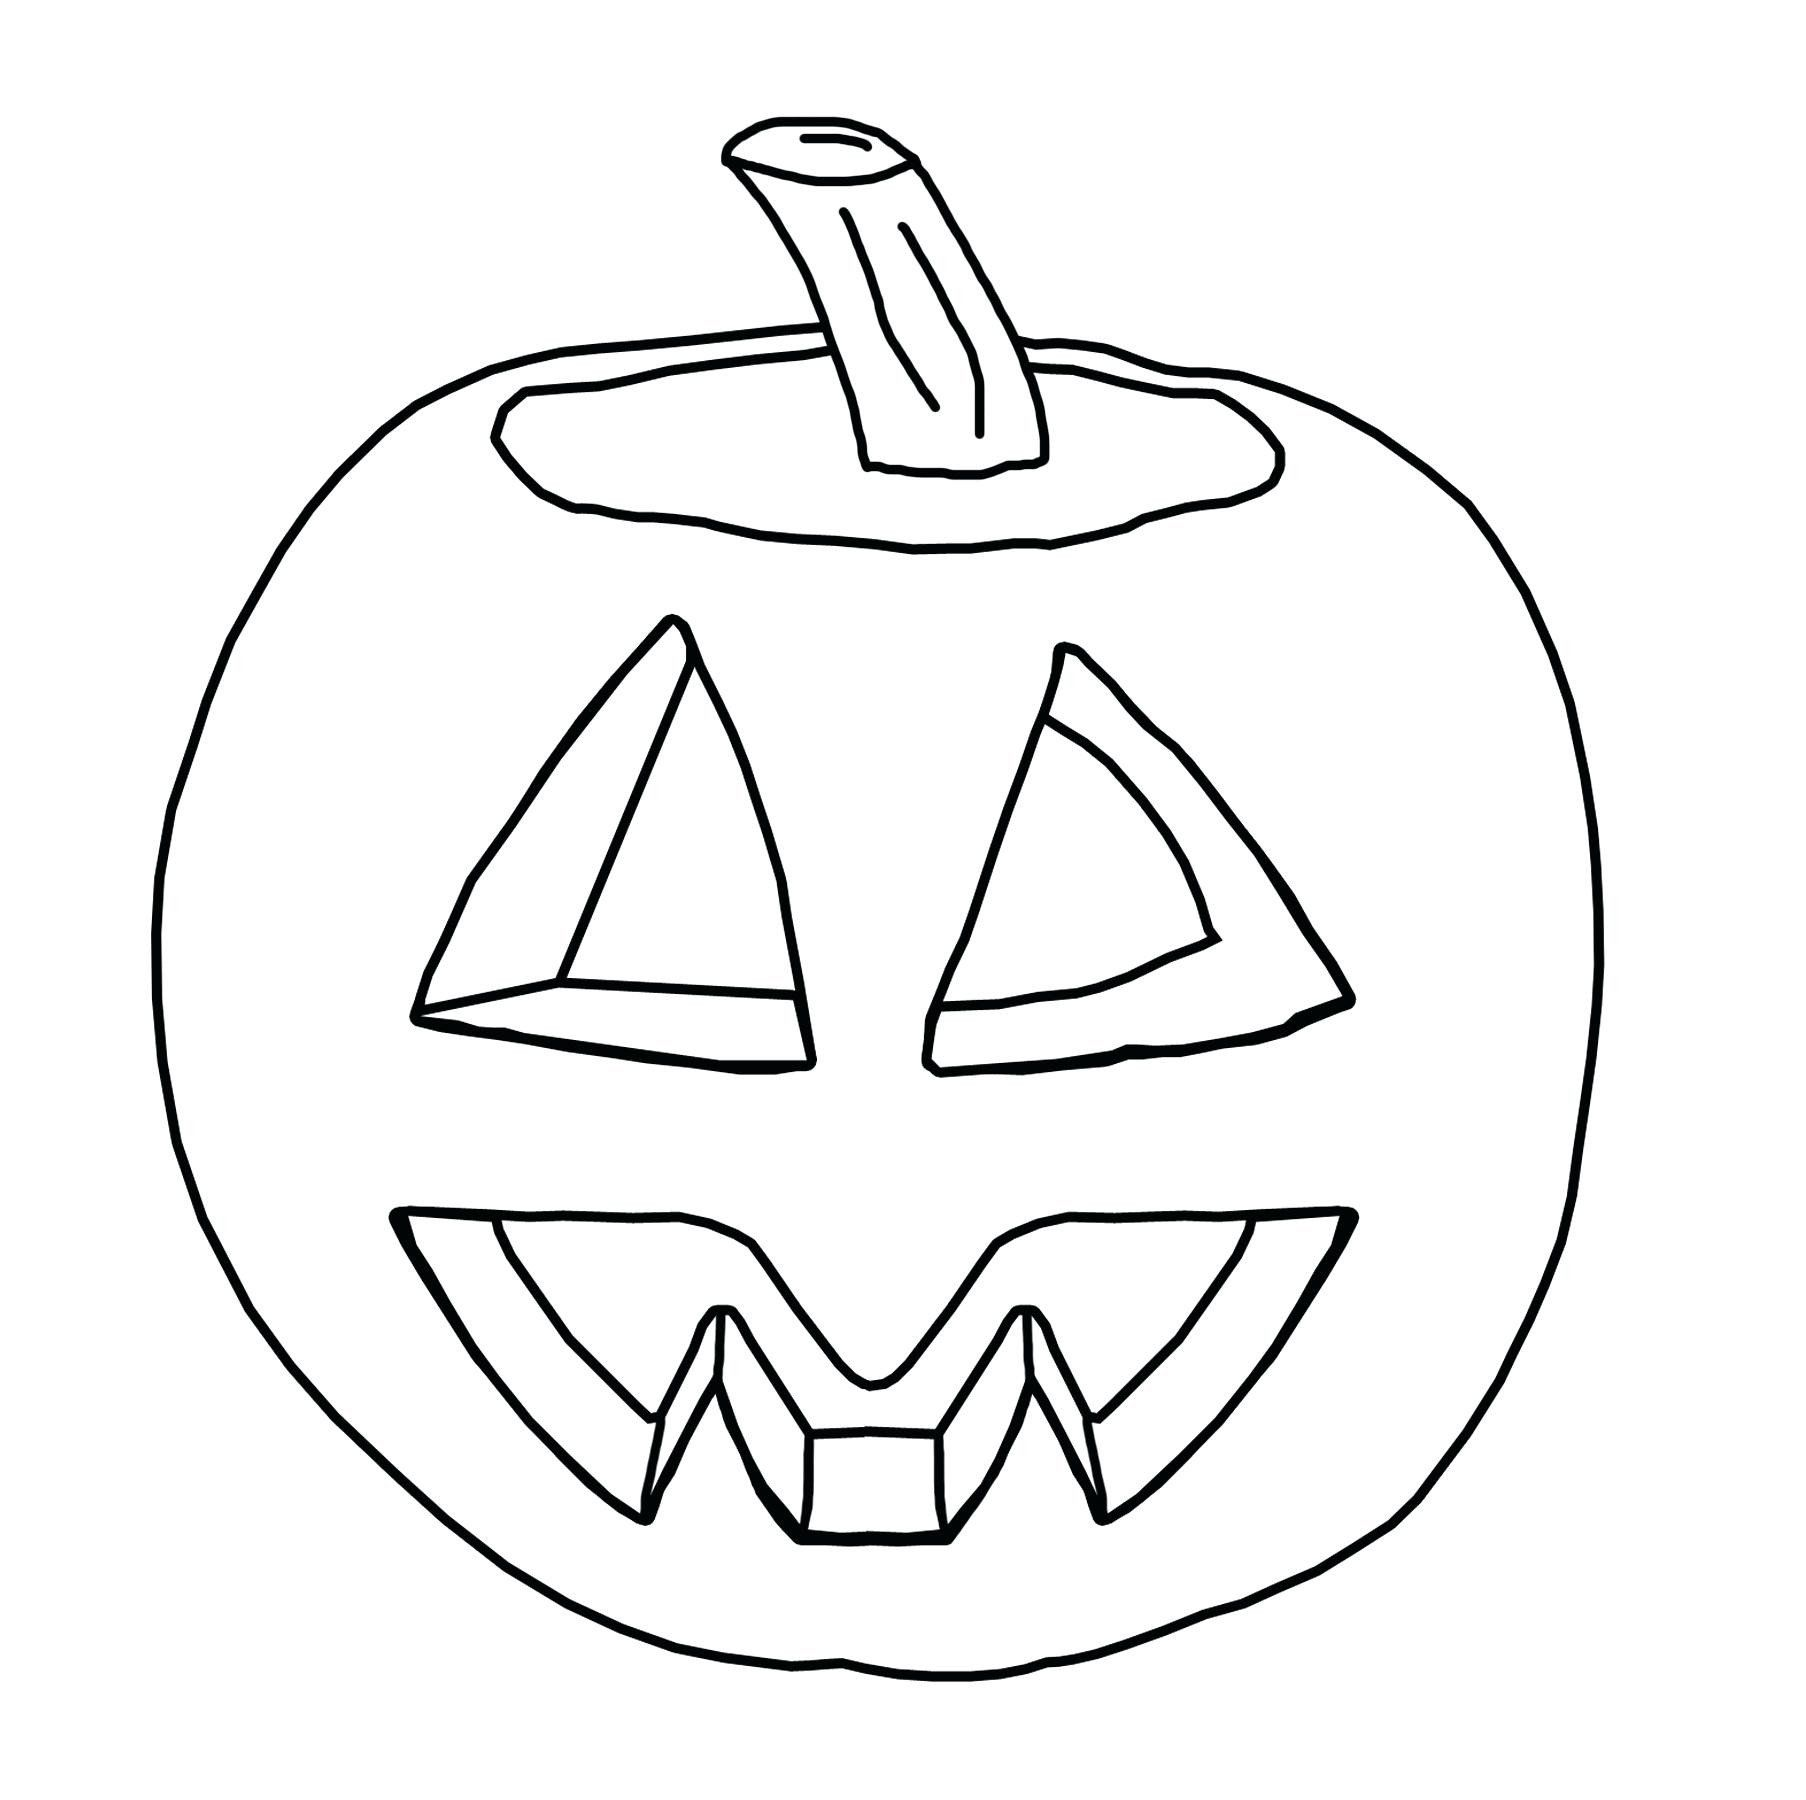 Jack O Lantern Coloring Pages New Green Lantern Superhero Coloring